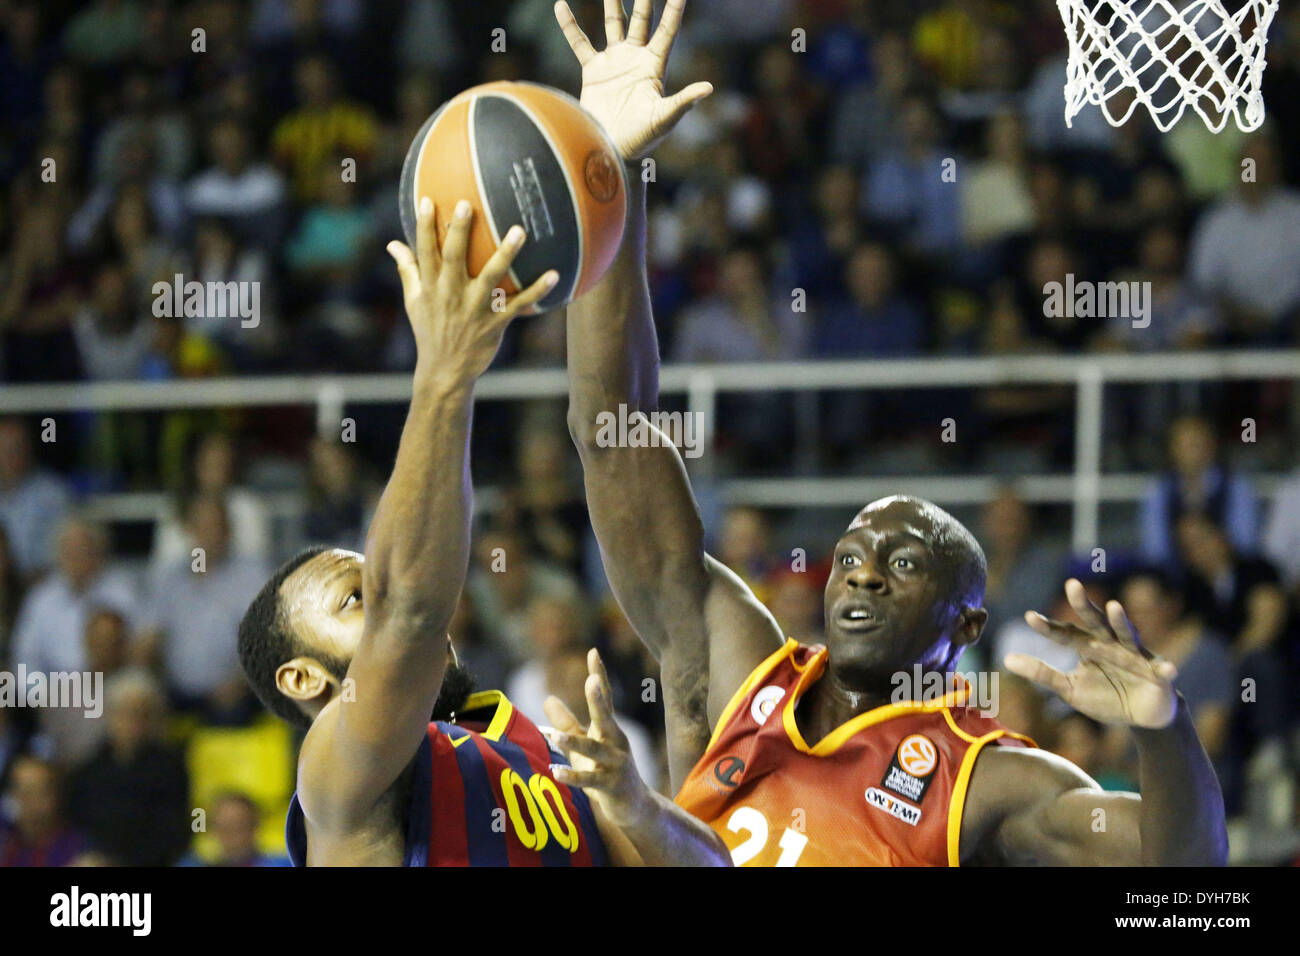 Barcelona, Spain. 17th Apr, 2014. BARCELONA SPAIN -17 Apr. Jakob Pullen and Pops Mensah-Bonsu in the second match of the quarterfinals of the Euroleague basketball match between FC Barcelona and Galatasaray, played at the Palau Blaugrana, the April 17, 2014 Photo: Joan Valls/Urbanandsport/Nurphoto Credit:  Joan Valls/NurPhoto/ZUMAPRESS.com/Alamy Live News - Stock Image